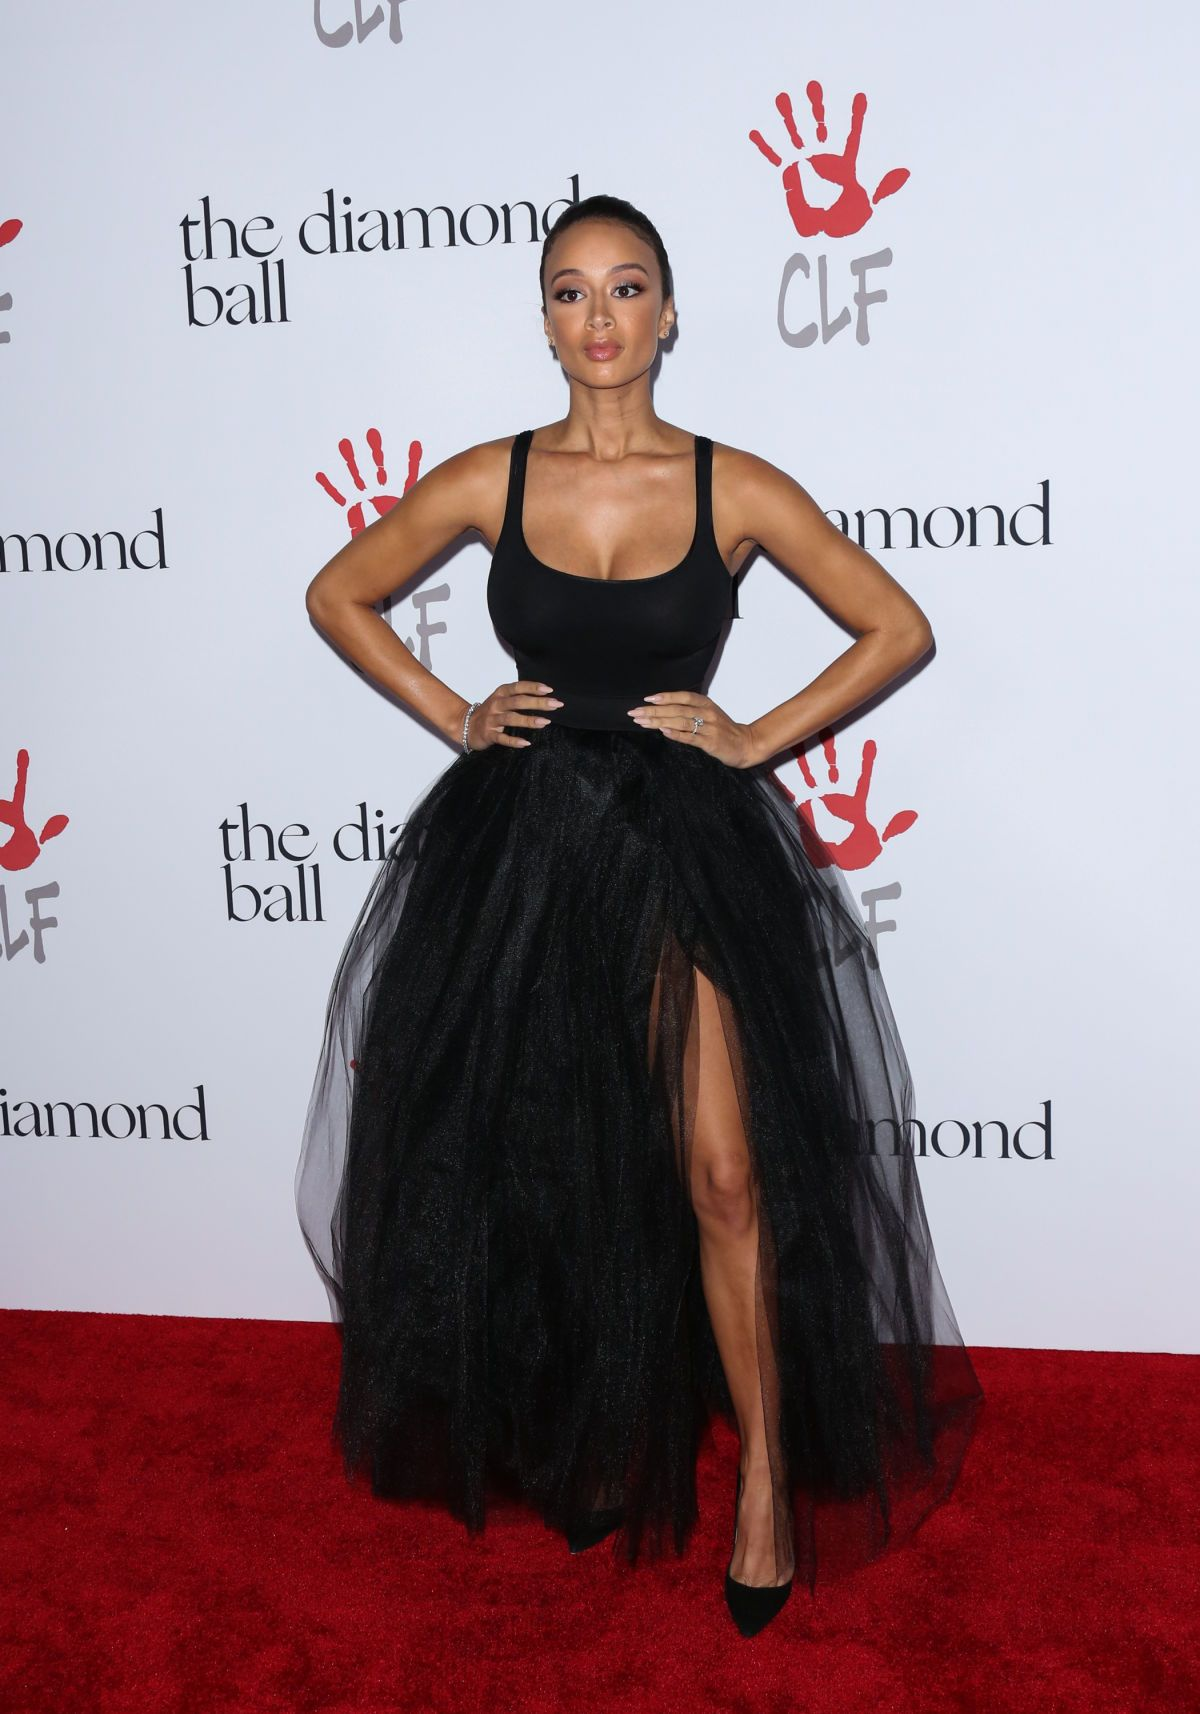 Draya Michele Was Just One Of The Many Ladies Showing Some